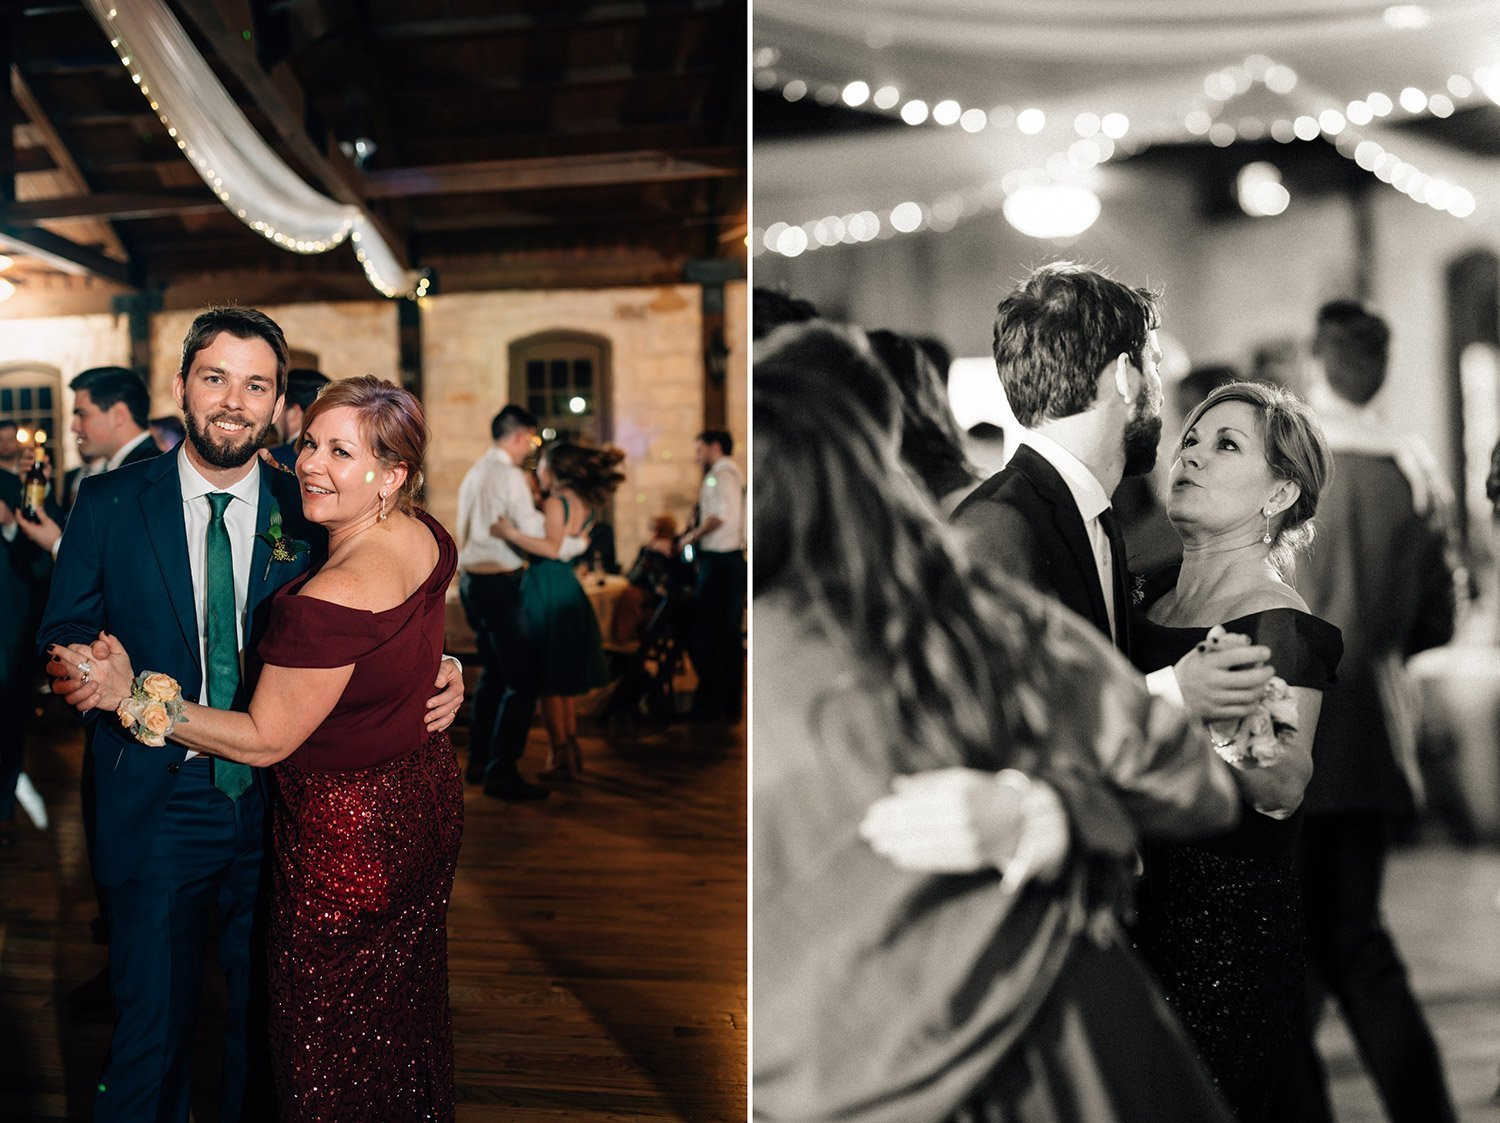 groom dances with his mother at wedding reception